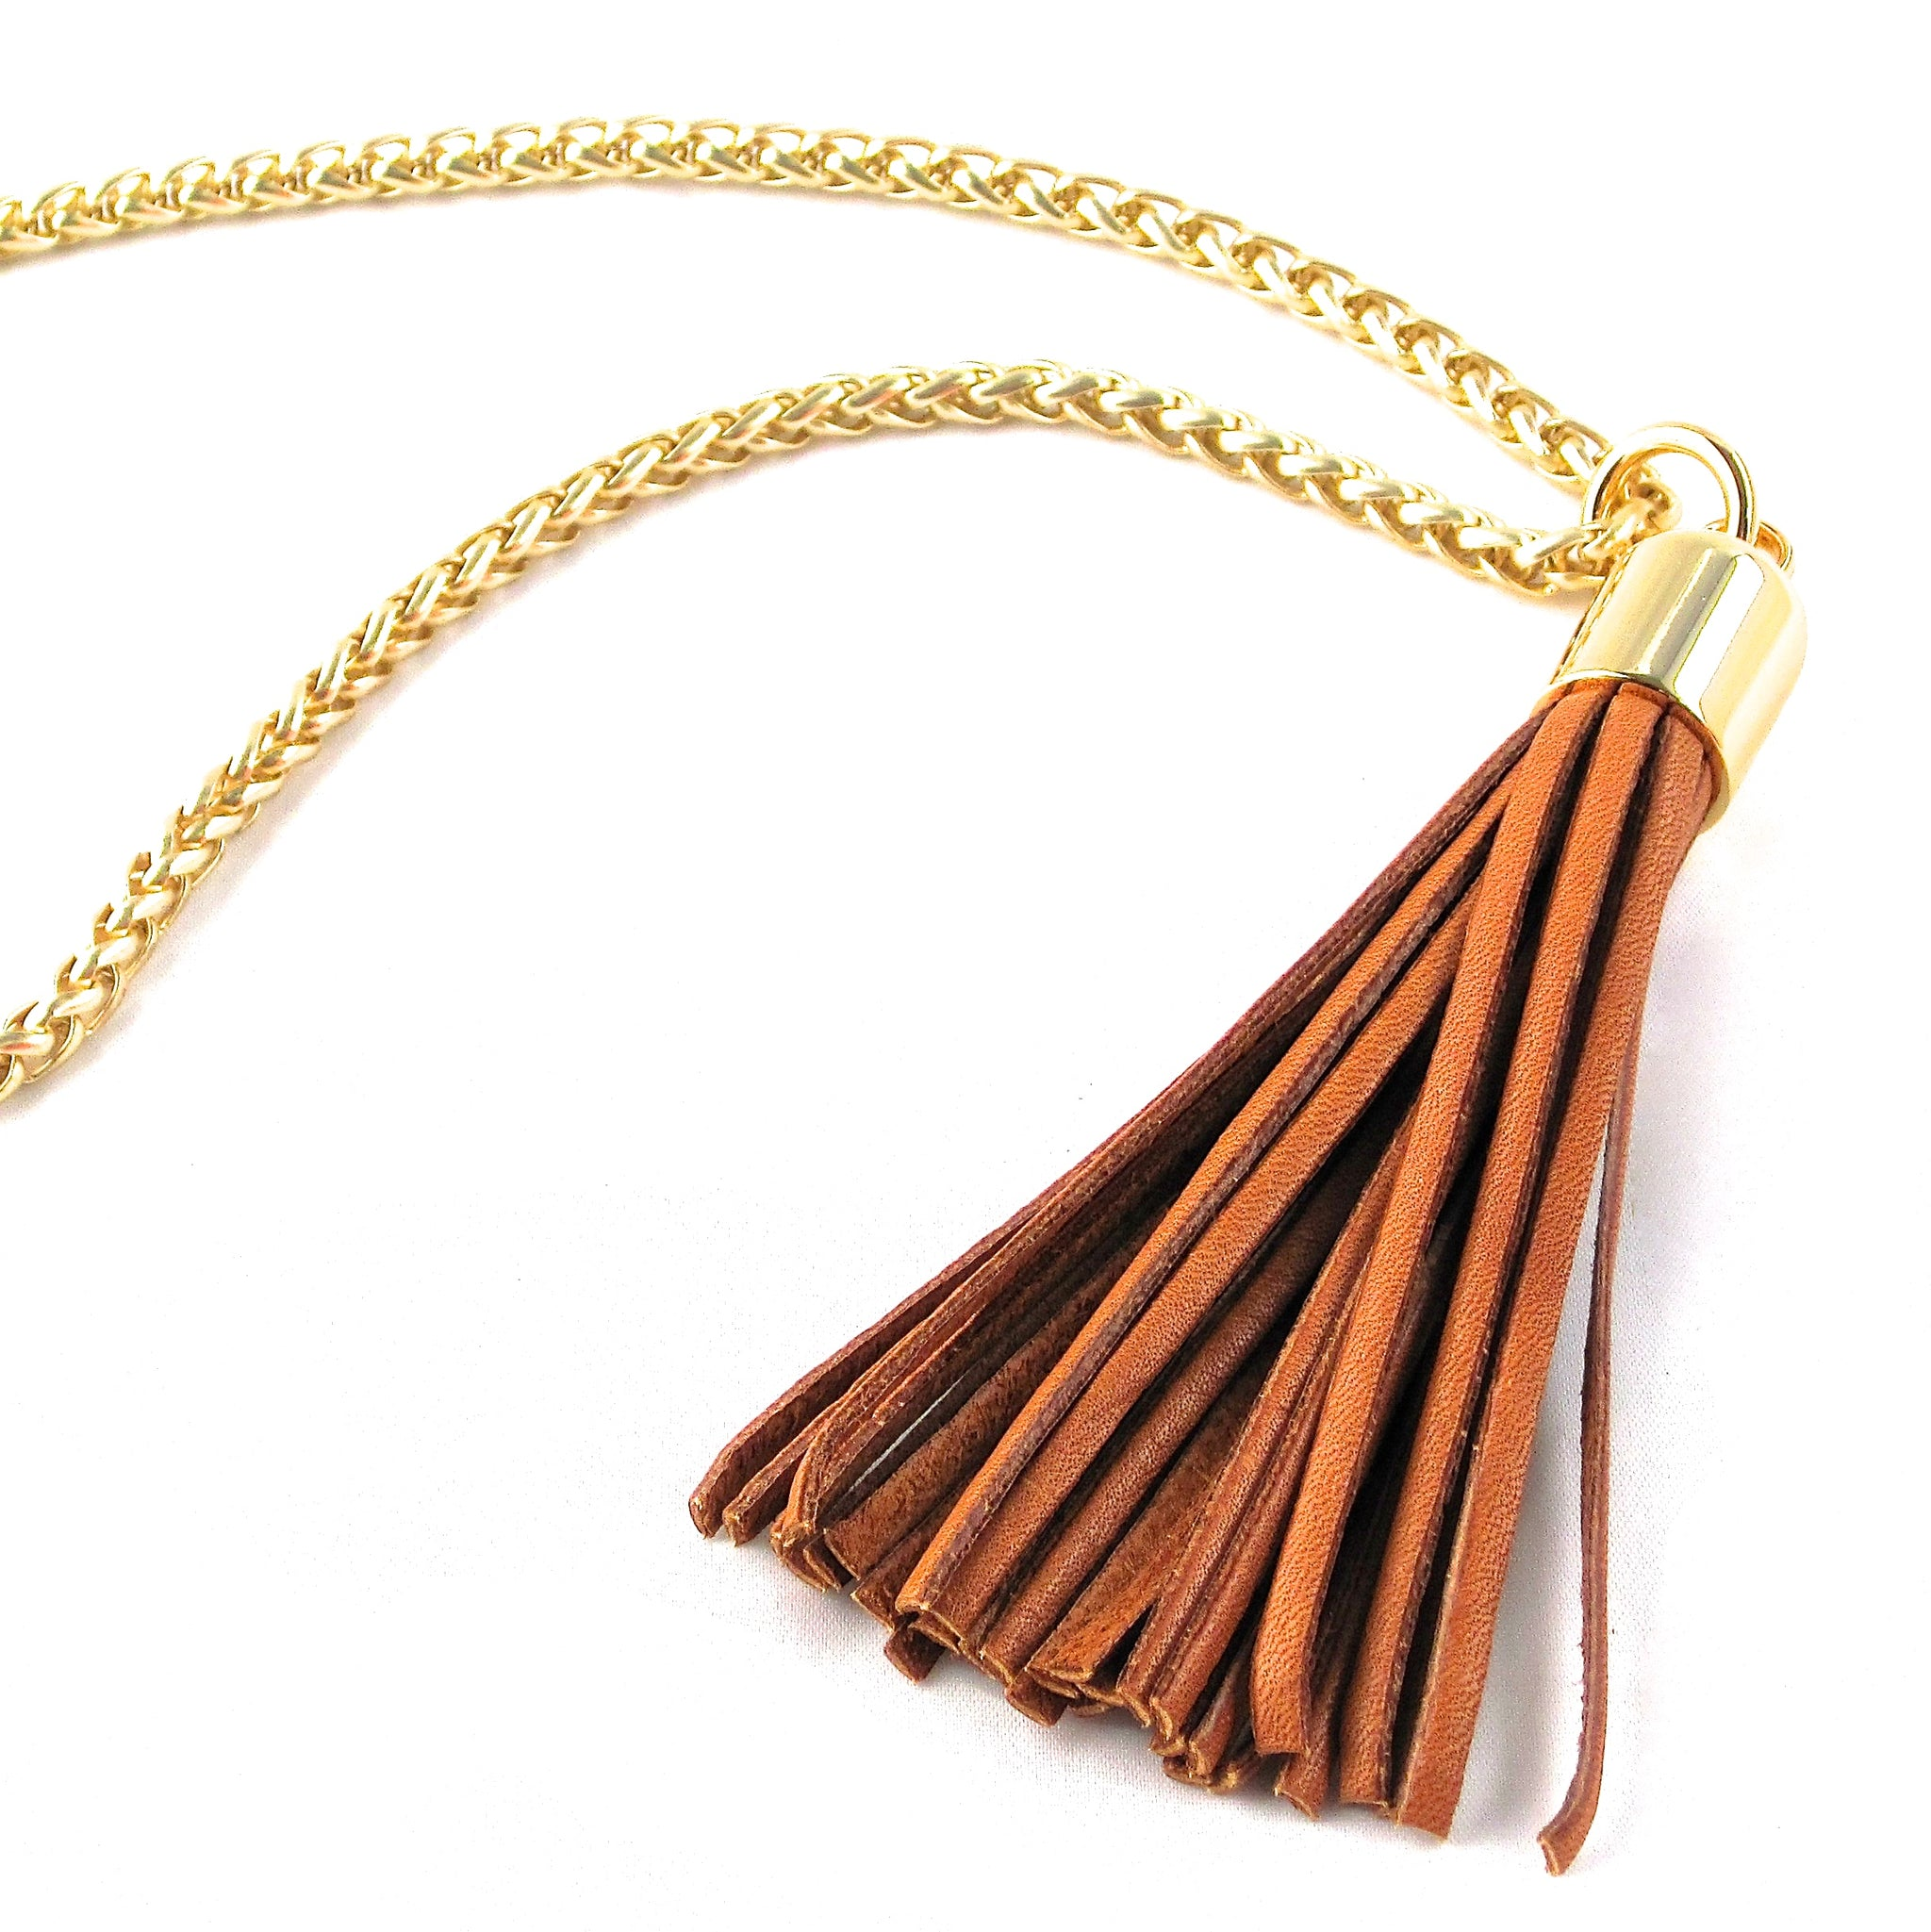 STAINLESS STEEL CHAINS AND LARGE DEERSKIN LEATHER TASSEL NECKLACE by nyet jewelry